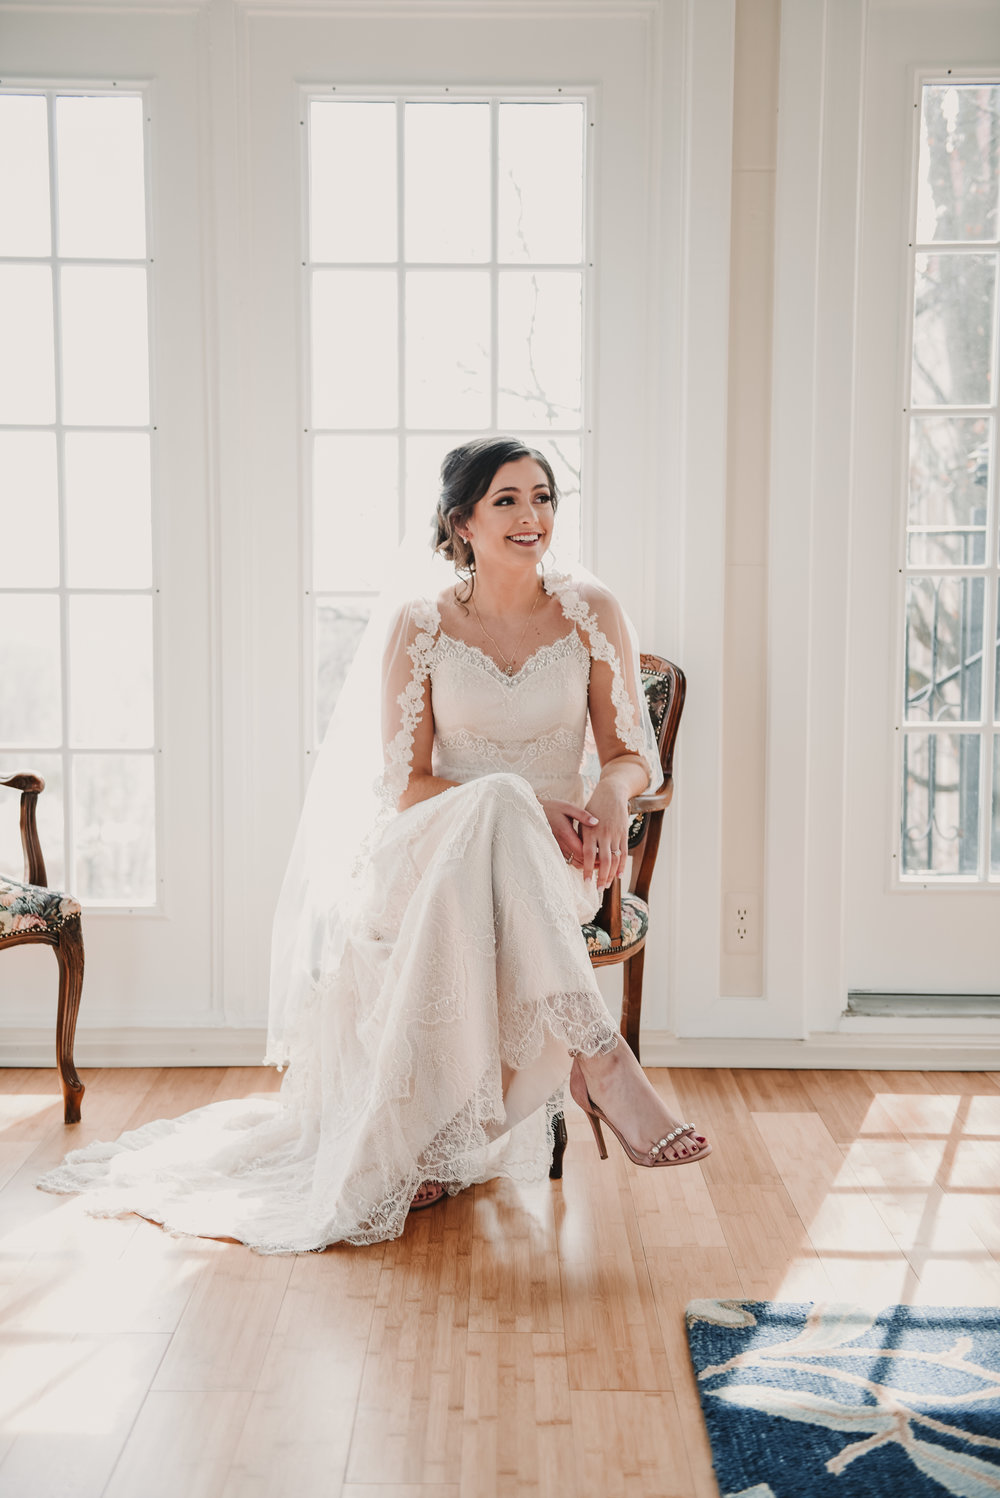 Bride sitting in a chair getting ready for her wedding